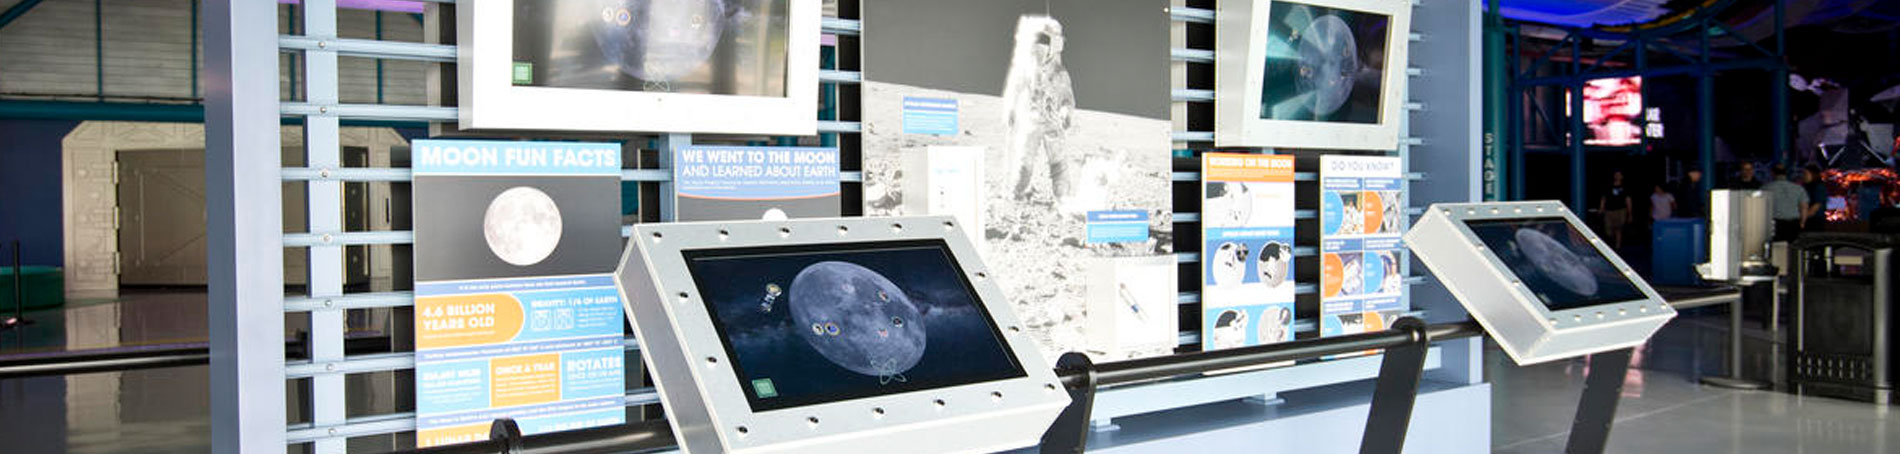 Explore interactive displaying displaying the moon and its six Apollo landing sites.